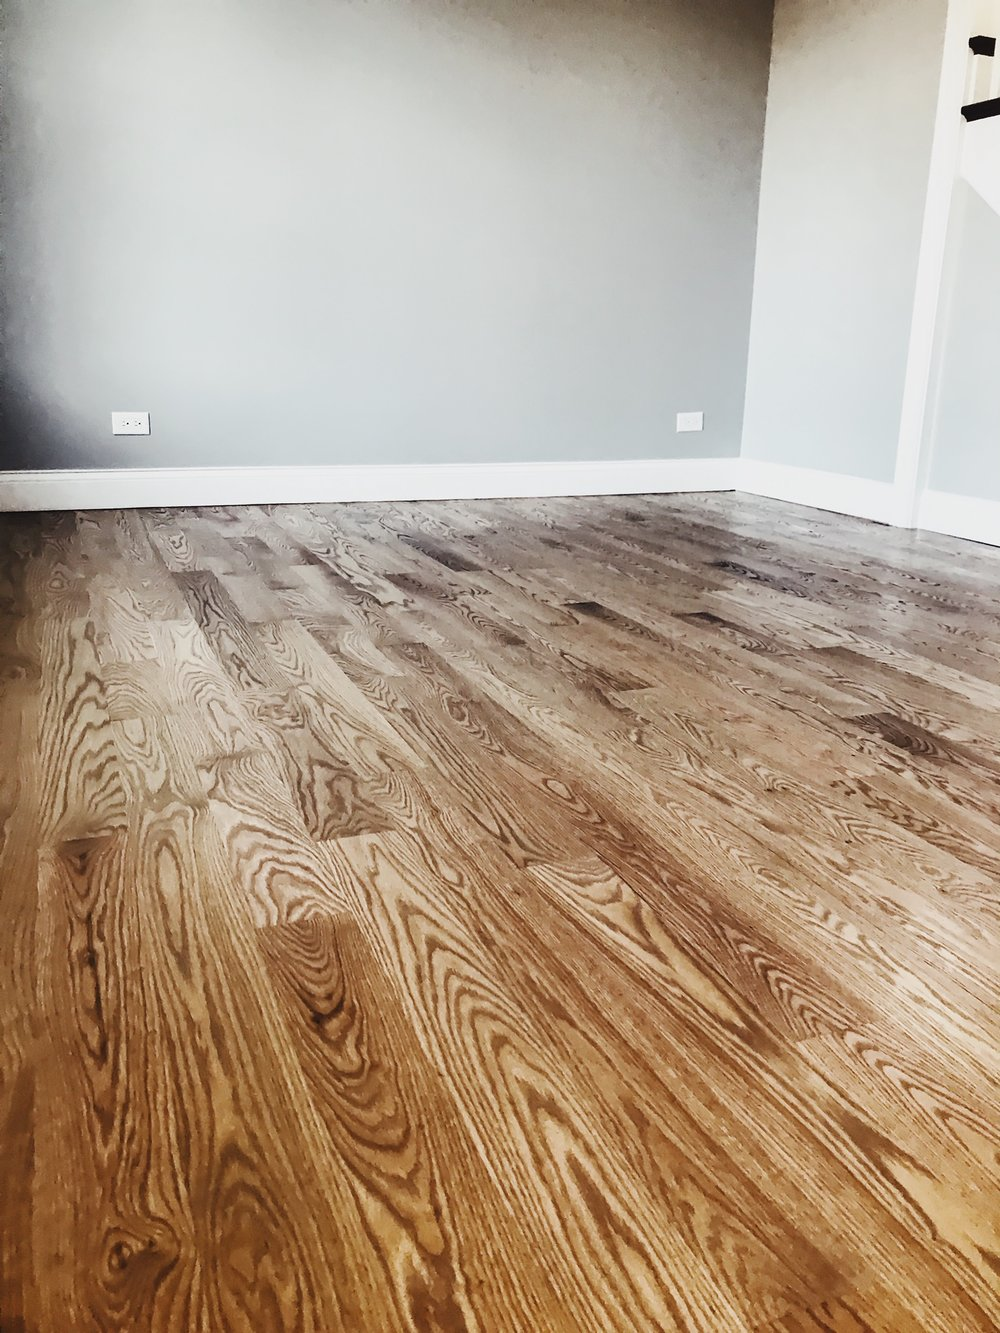 Weathered Oak Floor Stain. How To Choose Stain For Your Hardwood Floors. Selecting the best hardwood floor stain for your floors. Hardwood floor stain. Choosing stain for your floors. #hardwood #floor #stain